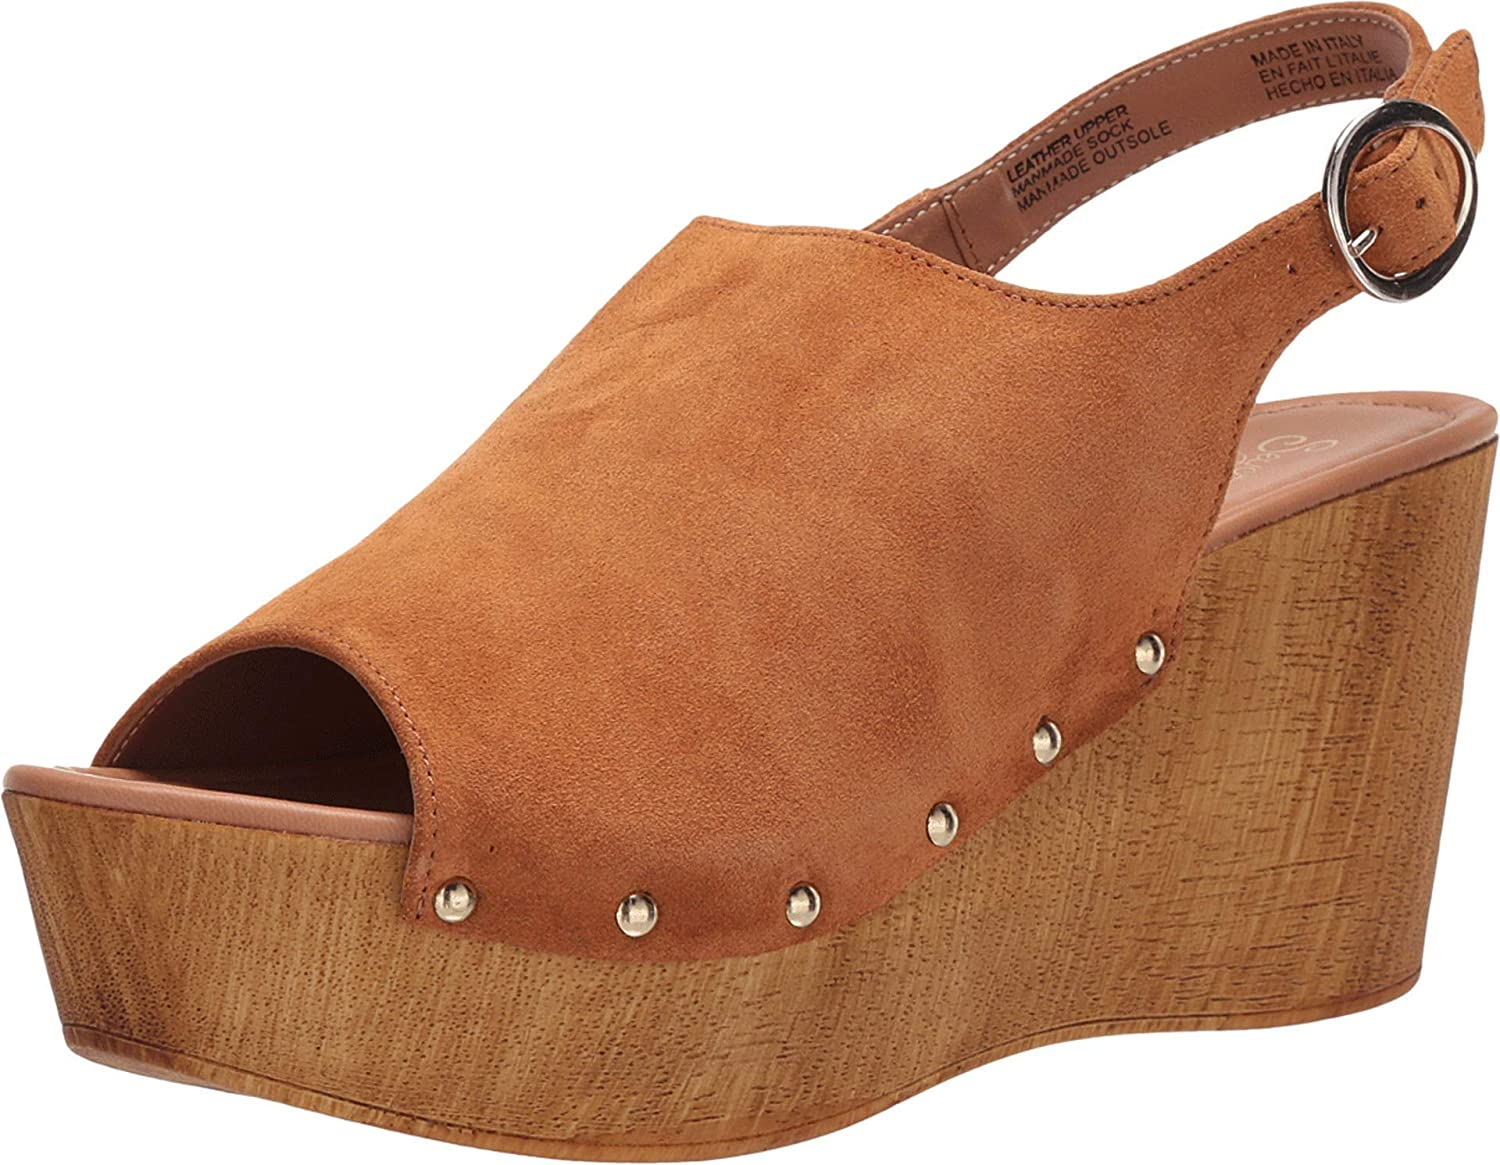 It is very popular Seychelles Women's Elated Max 90% OFF Sandal Wedge